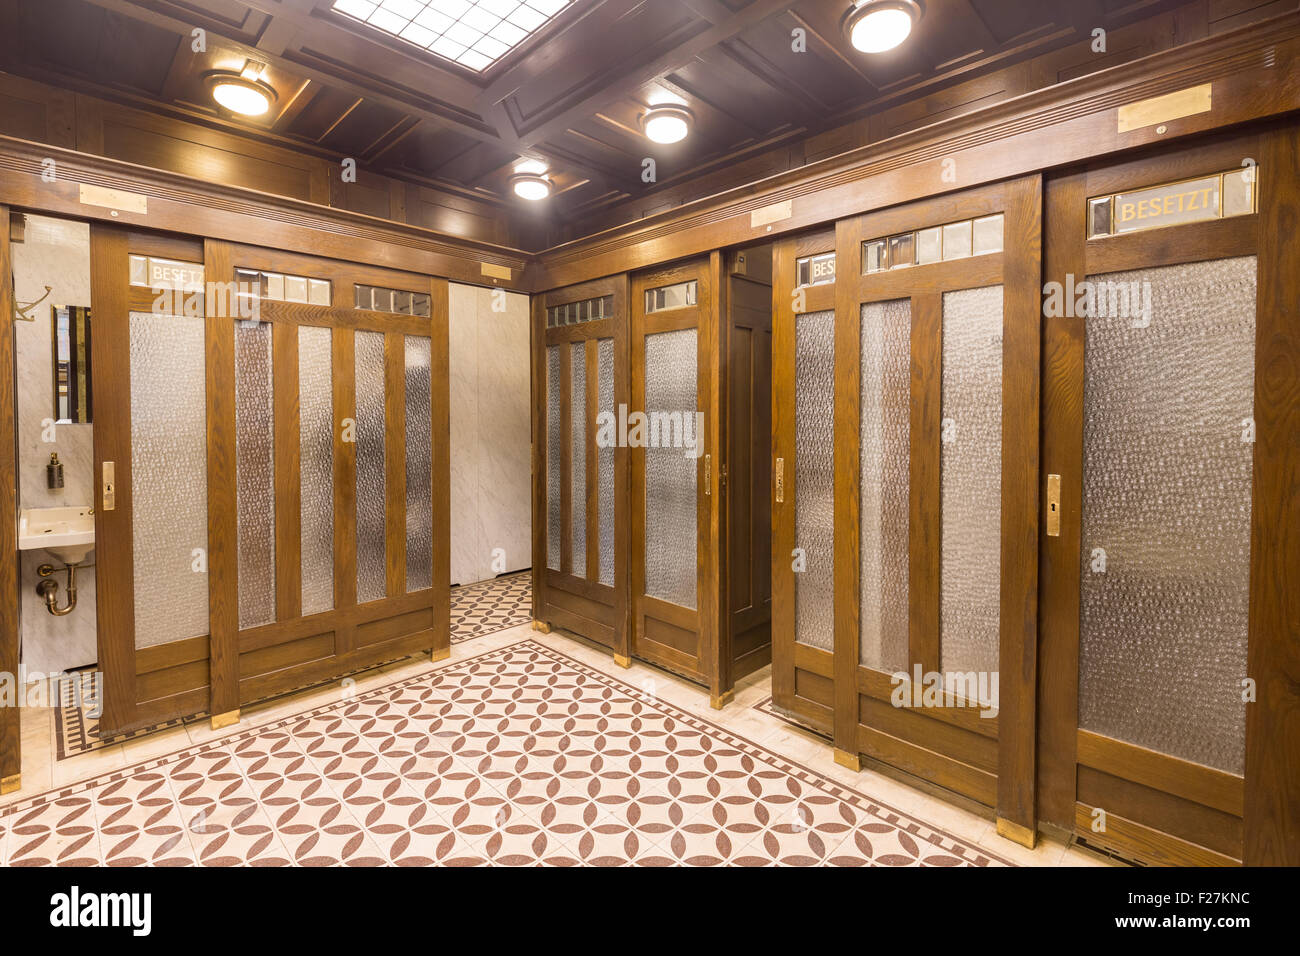 the famous public art nouveau toilet at graben in vienna austria stock photo royalty free. Black Bedroom Furniture Sets. Home Design Ideas